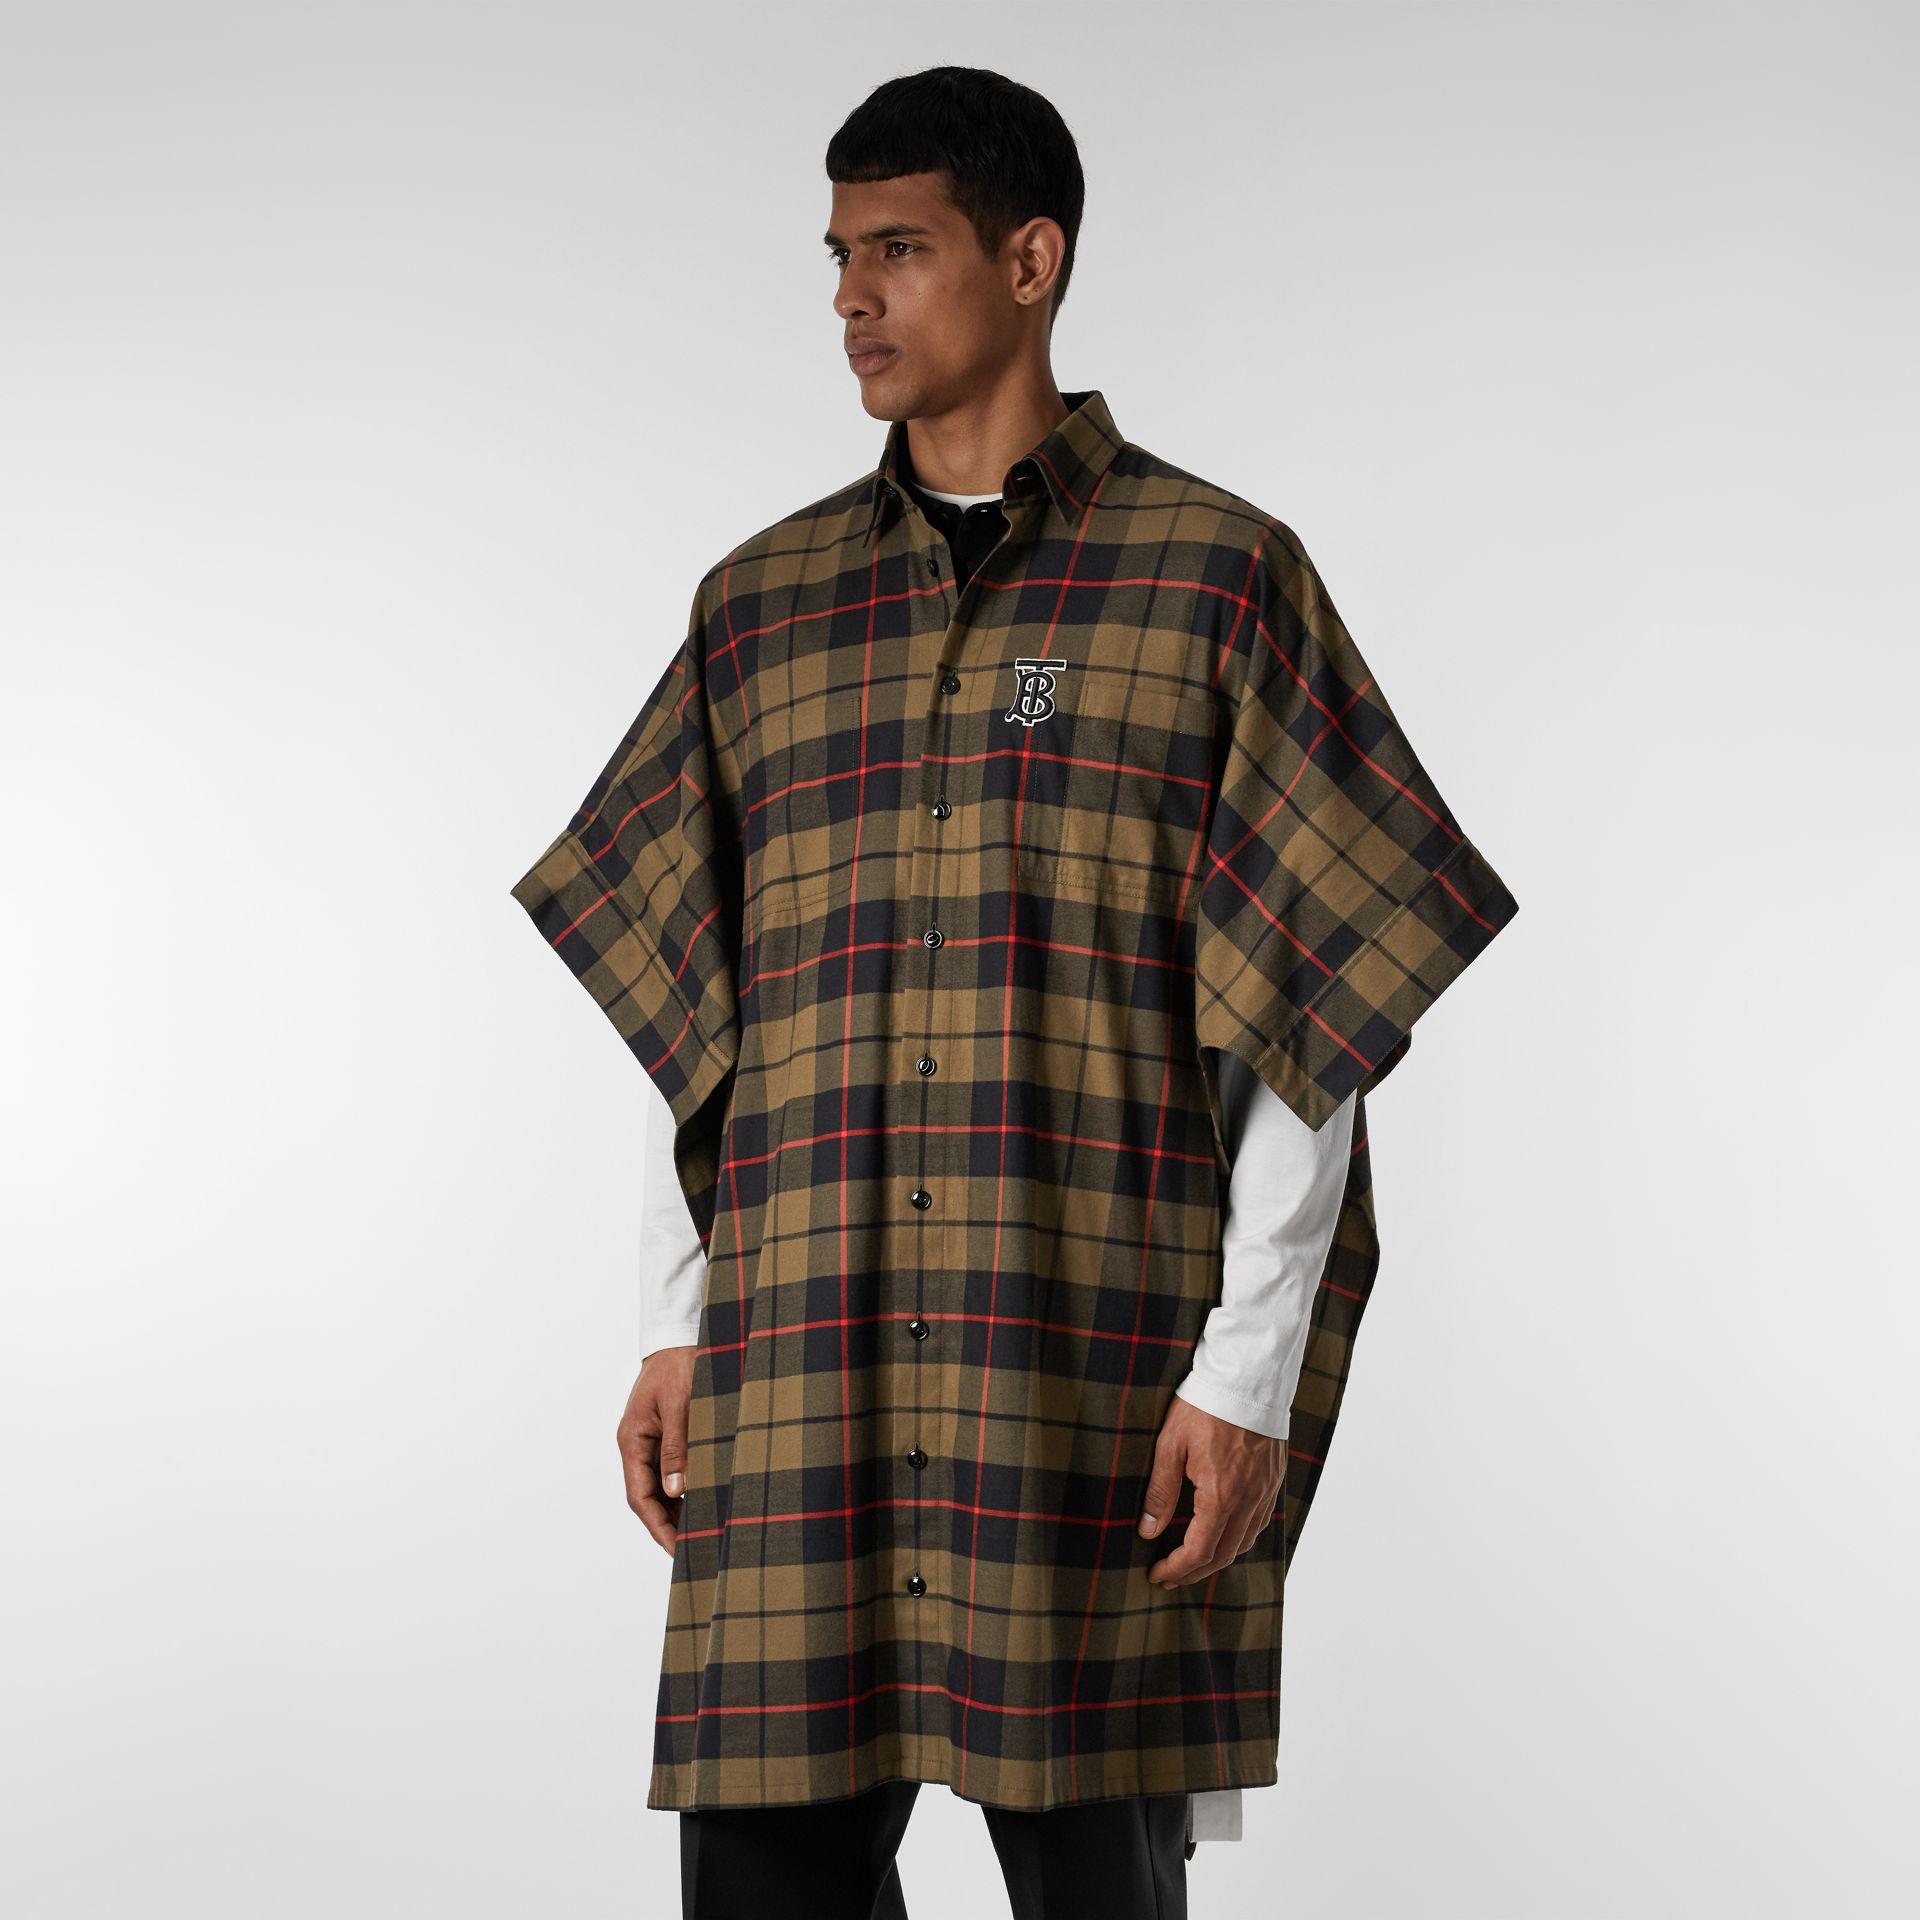 Monogram Motif Check Cotton Oversized Poncho in Military Olive | Burberry Hong Kong - gallery image 10